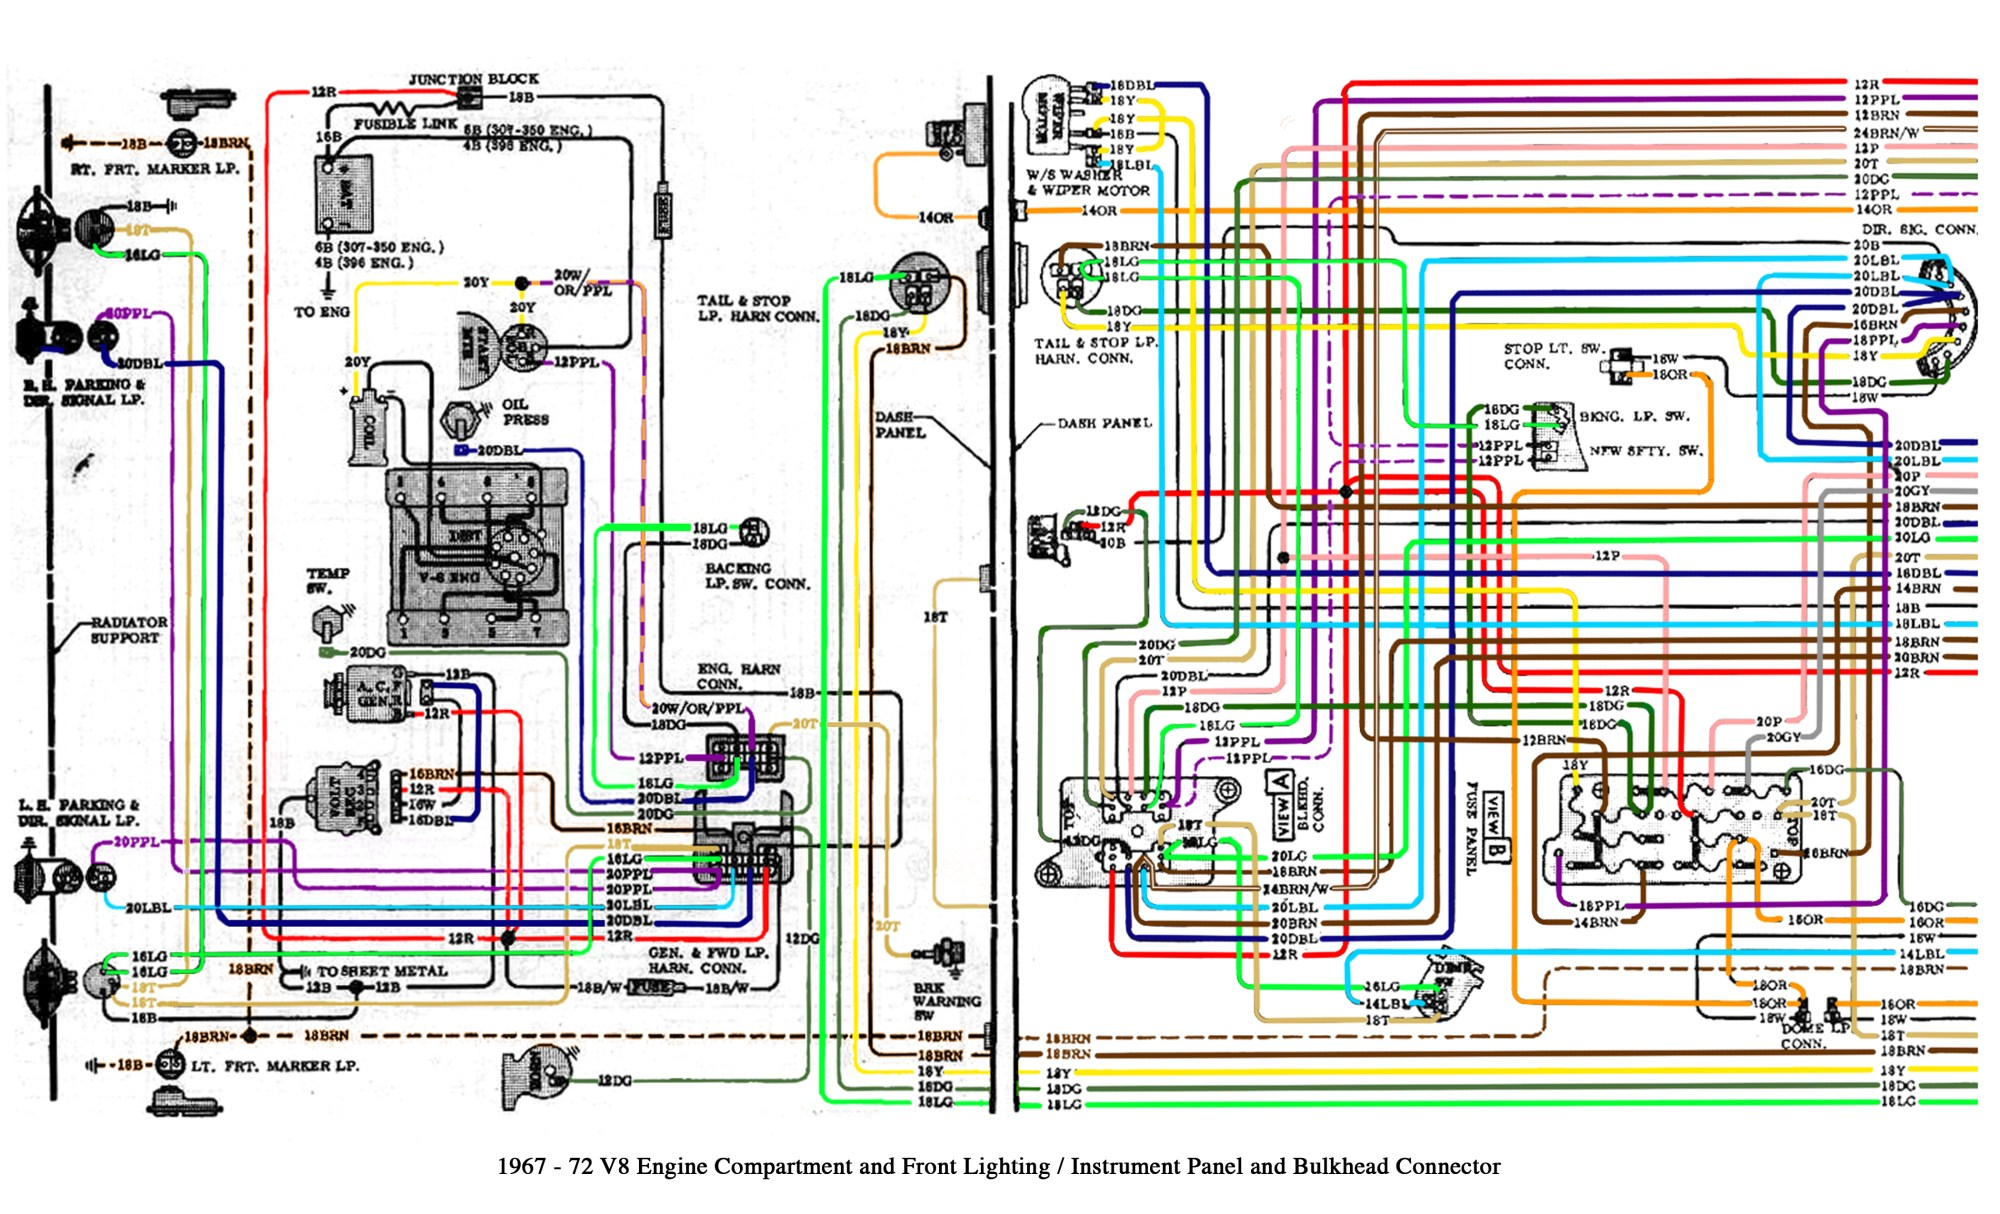 hight resolution of 1968 chevy truck dash wiring diagram wiring diagram fascinating 68 chevy impala wiring diagram 1968 chevy